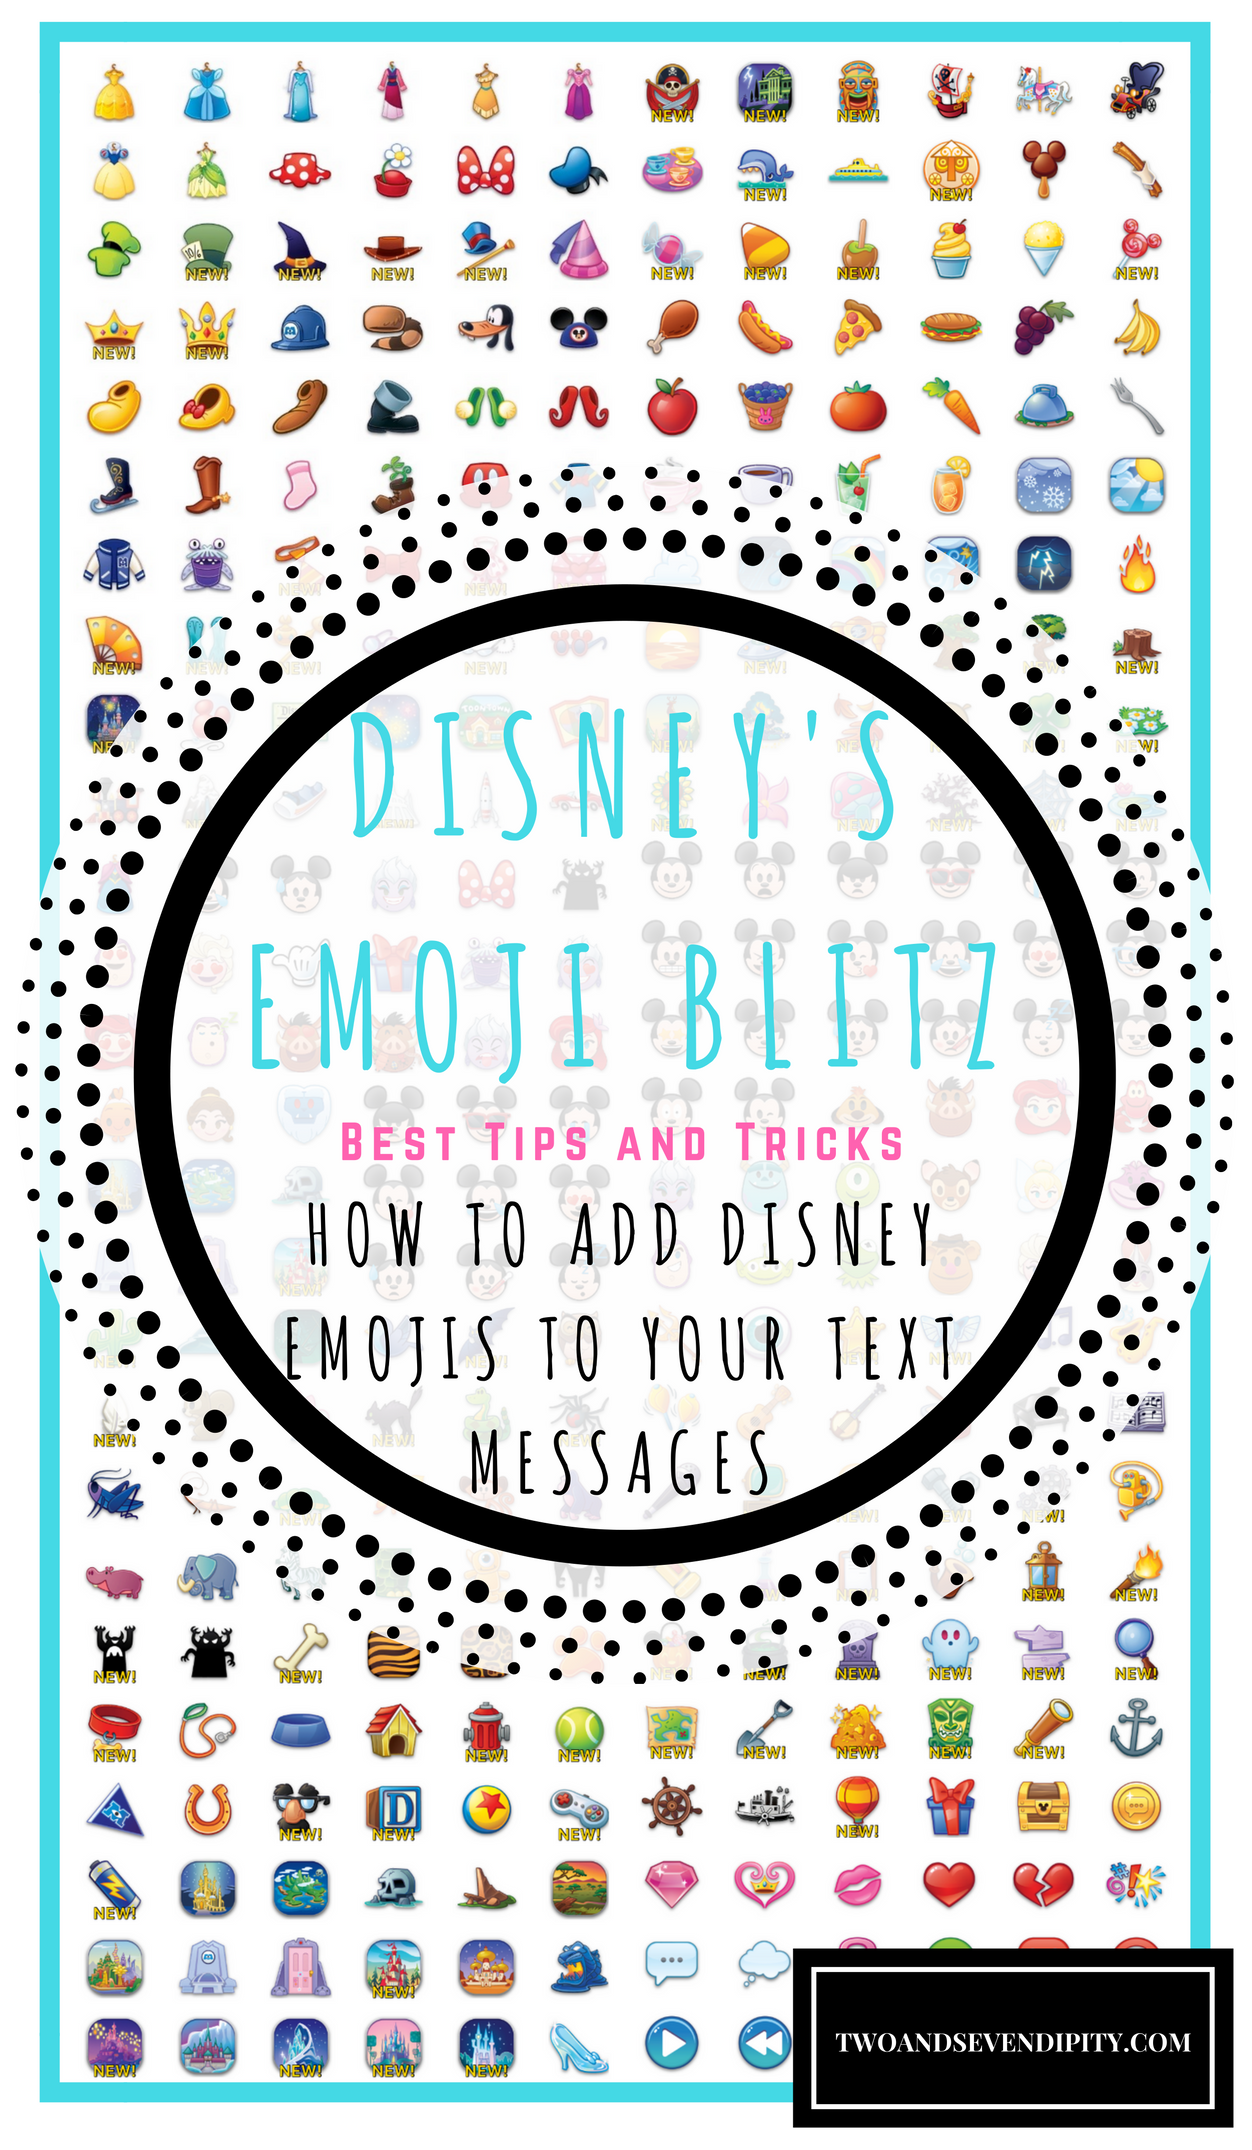 The compelling thing about the Disney Emoji Blitz game is